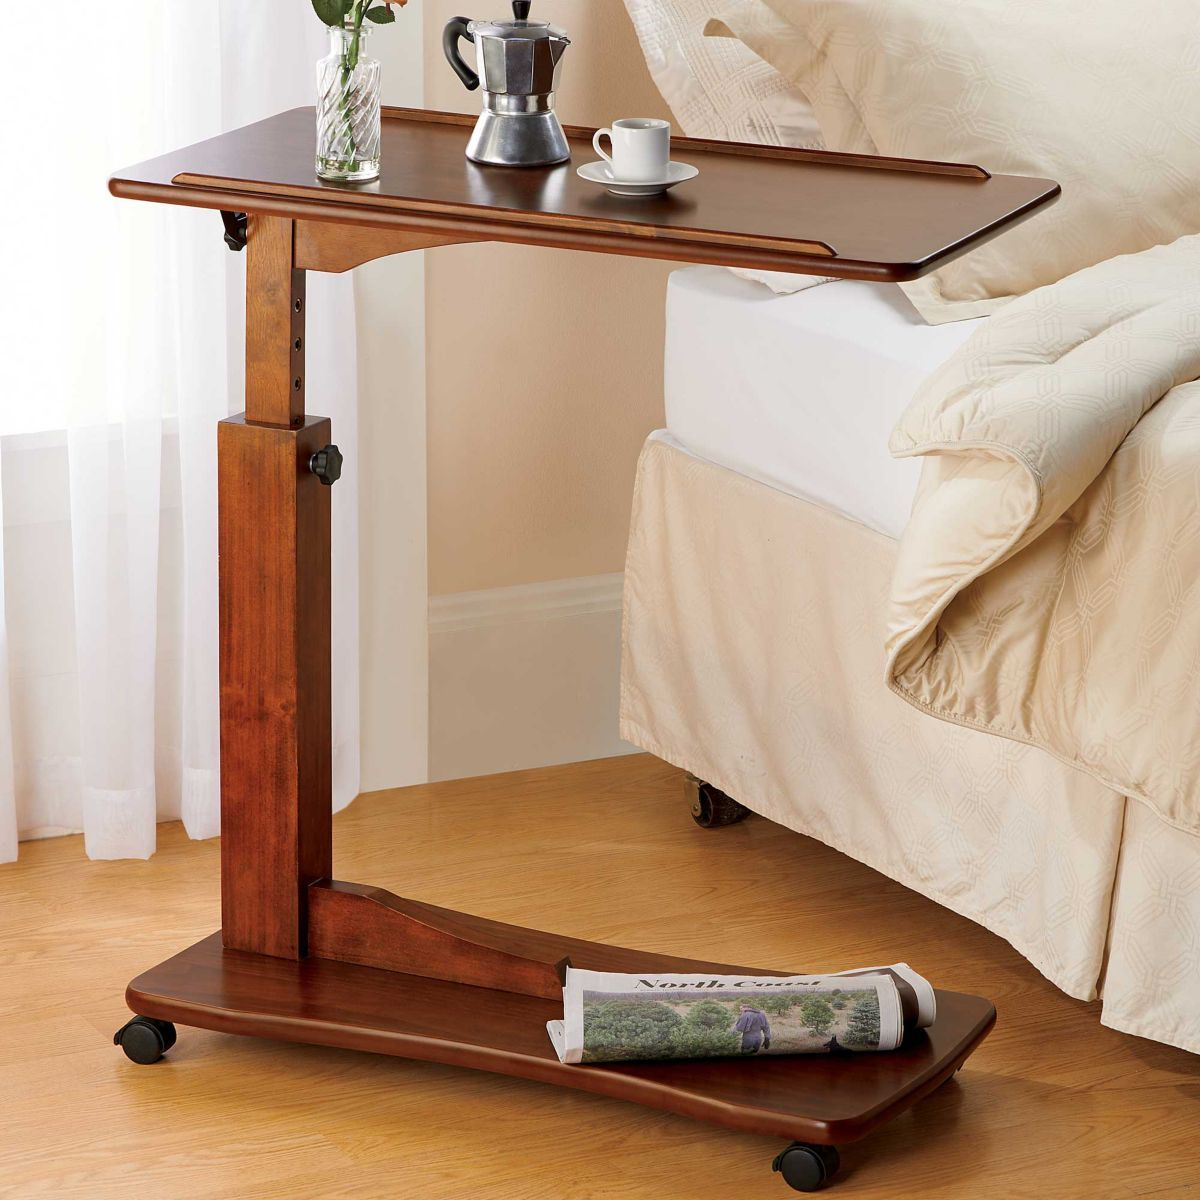 Bedroom Bench Table Adjustable Table Overbed Table Bedrooms And Adjustable Beds